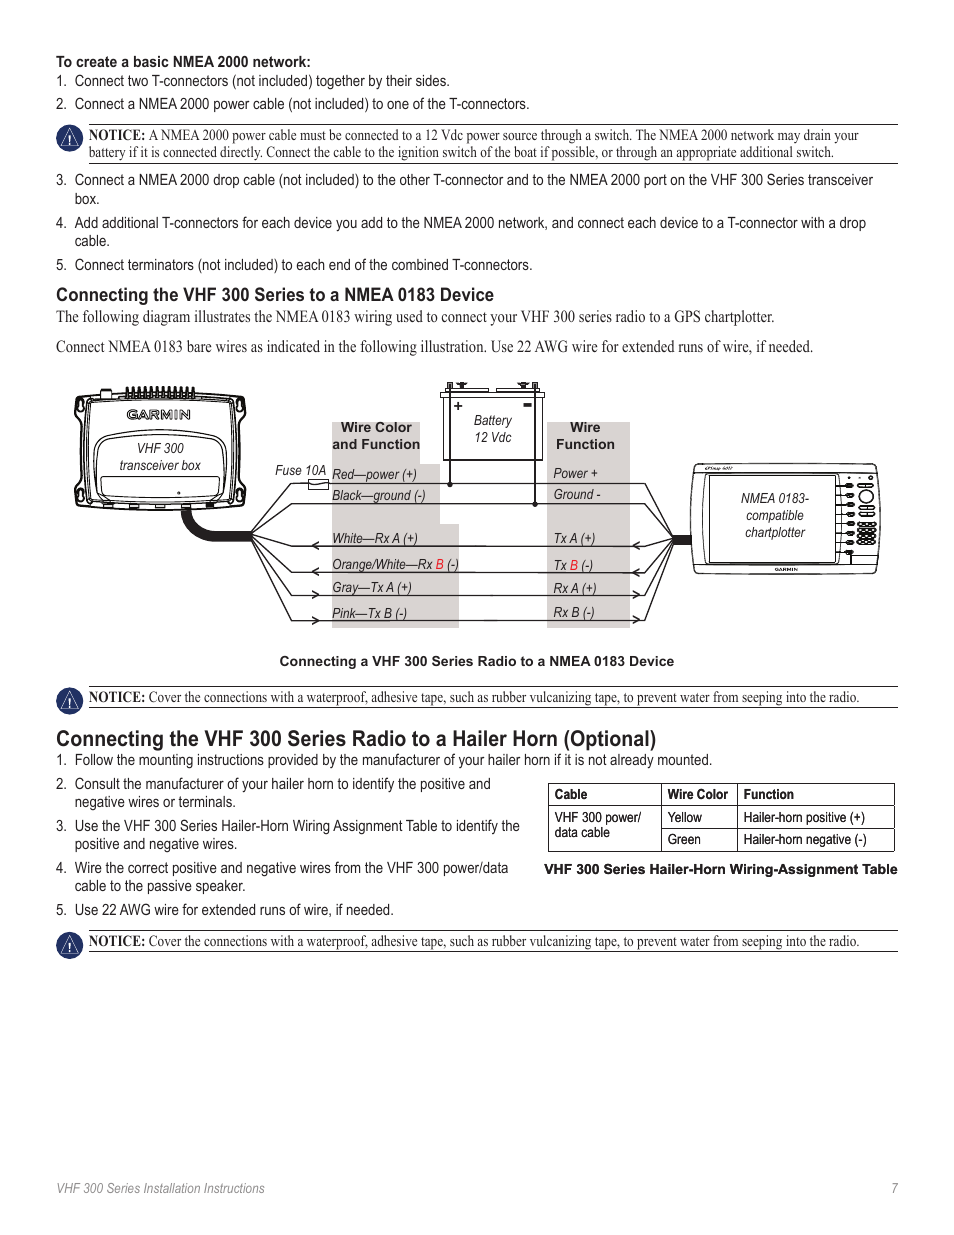 Connecting The Radio To A Hailer Horn Garmin Vhf Ghs 10i User Nmea 2000 Wiring Diagram Manual Page 7 12